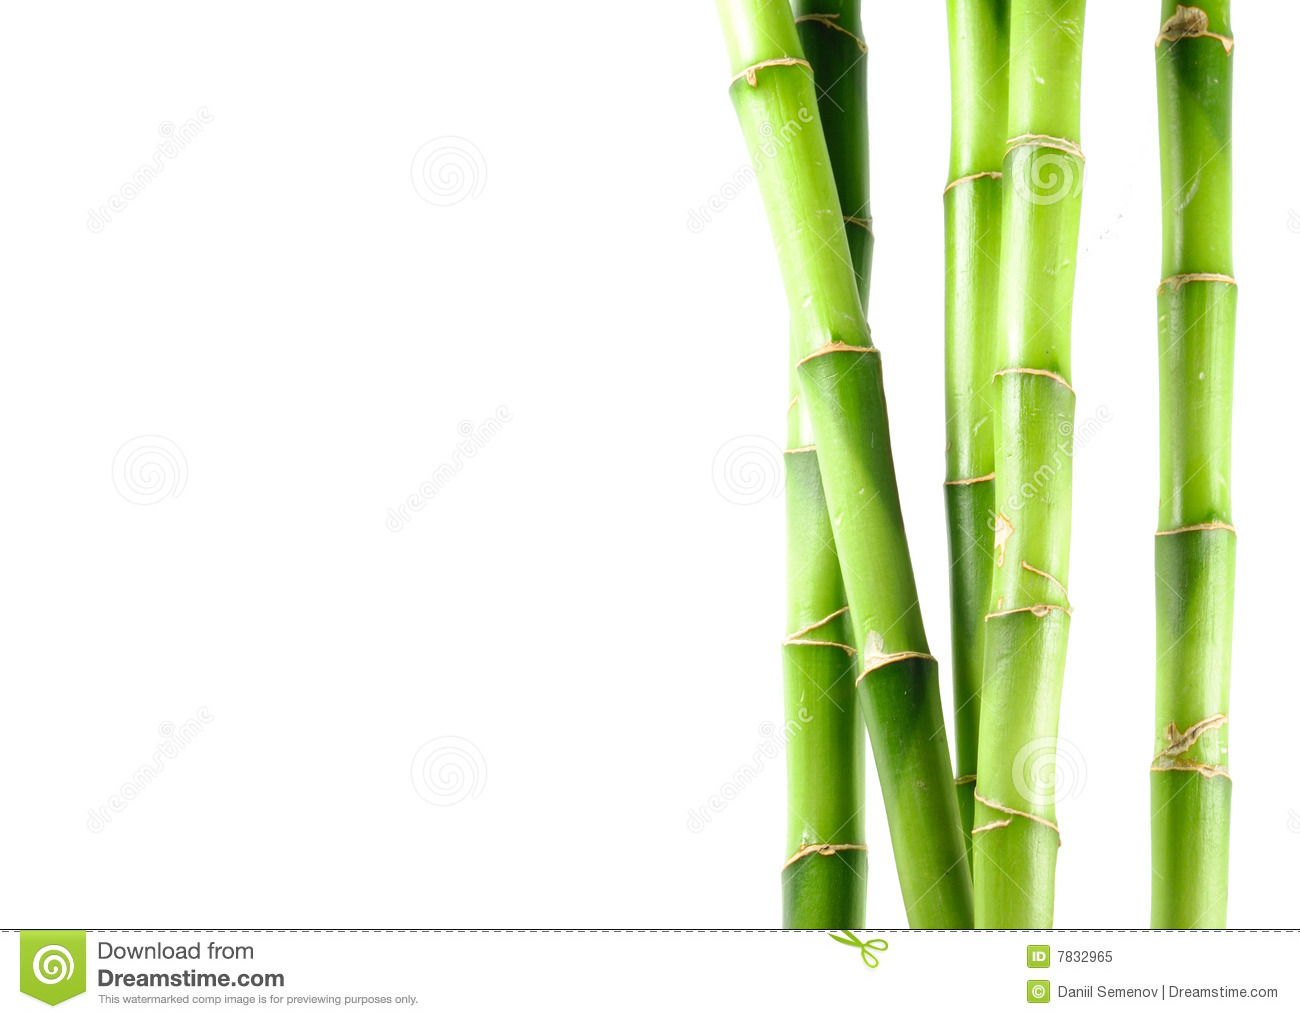 Bamboo On White Isolated Background Royalty Free Stock Photo - Image ...